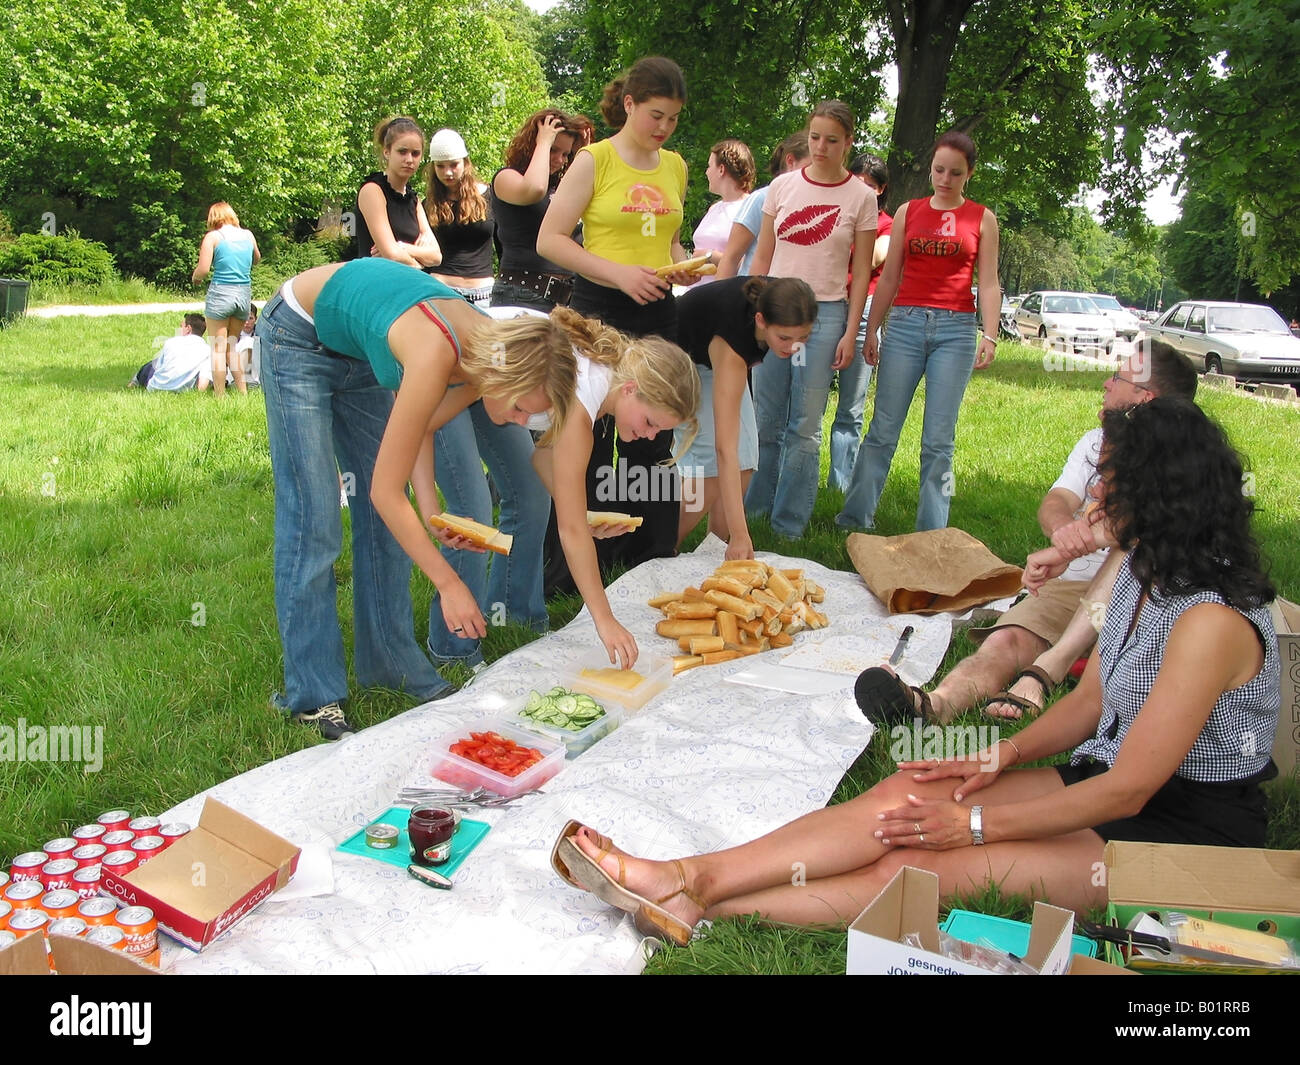 picnic in the park on a school trip to Paris France - Stock Image